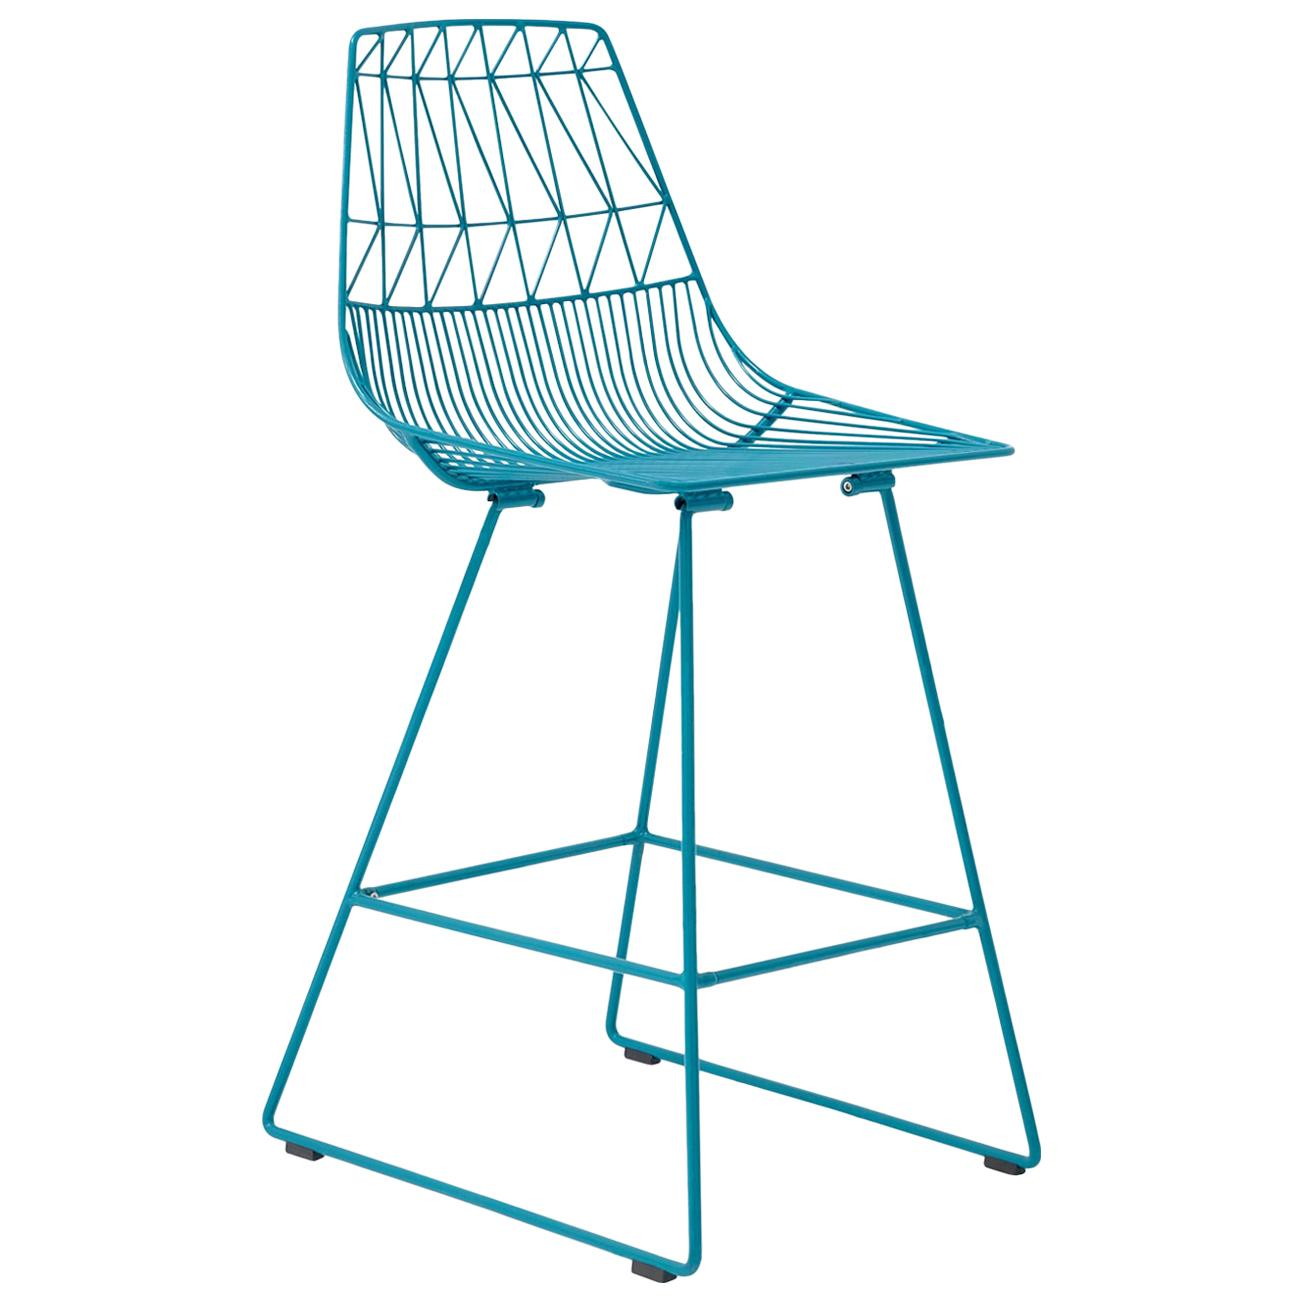 Mid-Century Modern, Minimalist Counter Wire Stool, in Peacock Blue